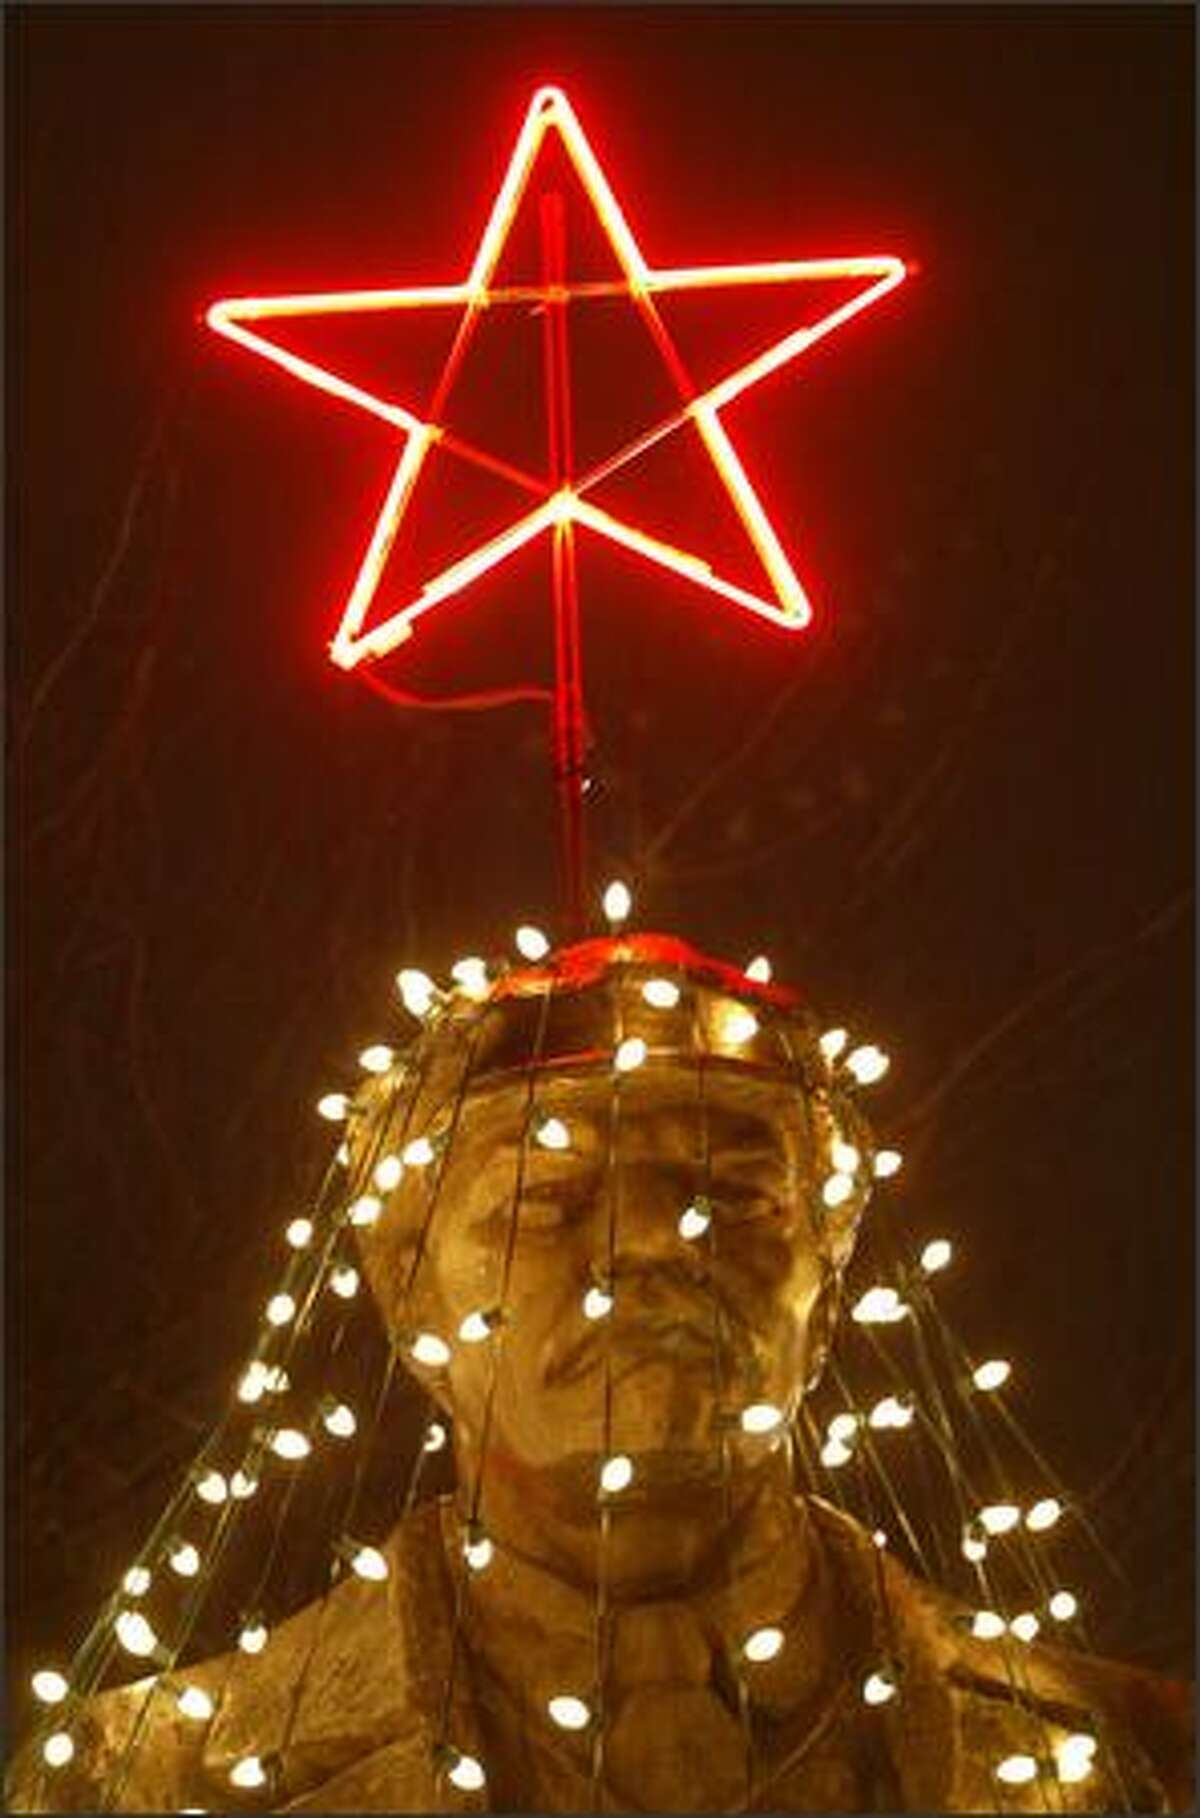 Folks in Fremont gathered last night for the lighting ceremony at the Lenin statue. Strings of light created a Christmas tree around the statue, complete with a shining red star on his hat.